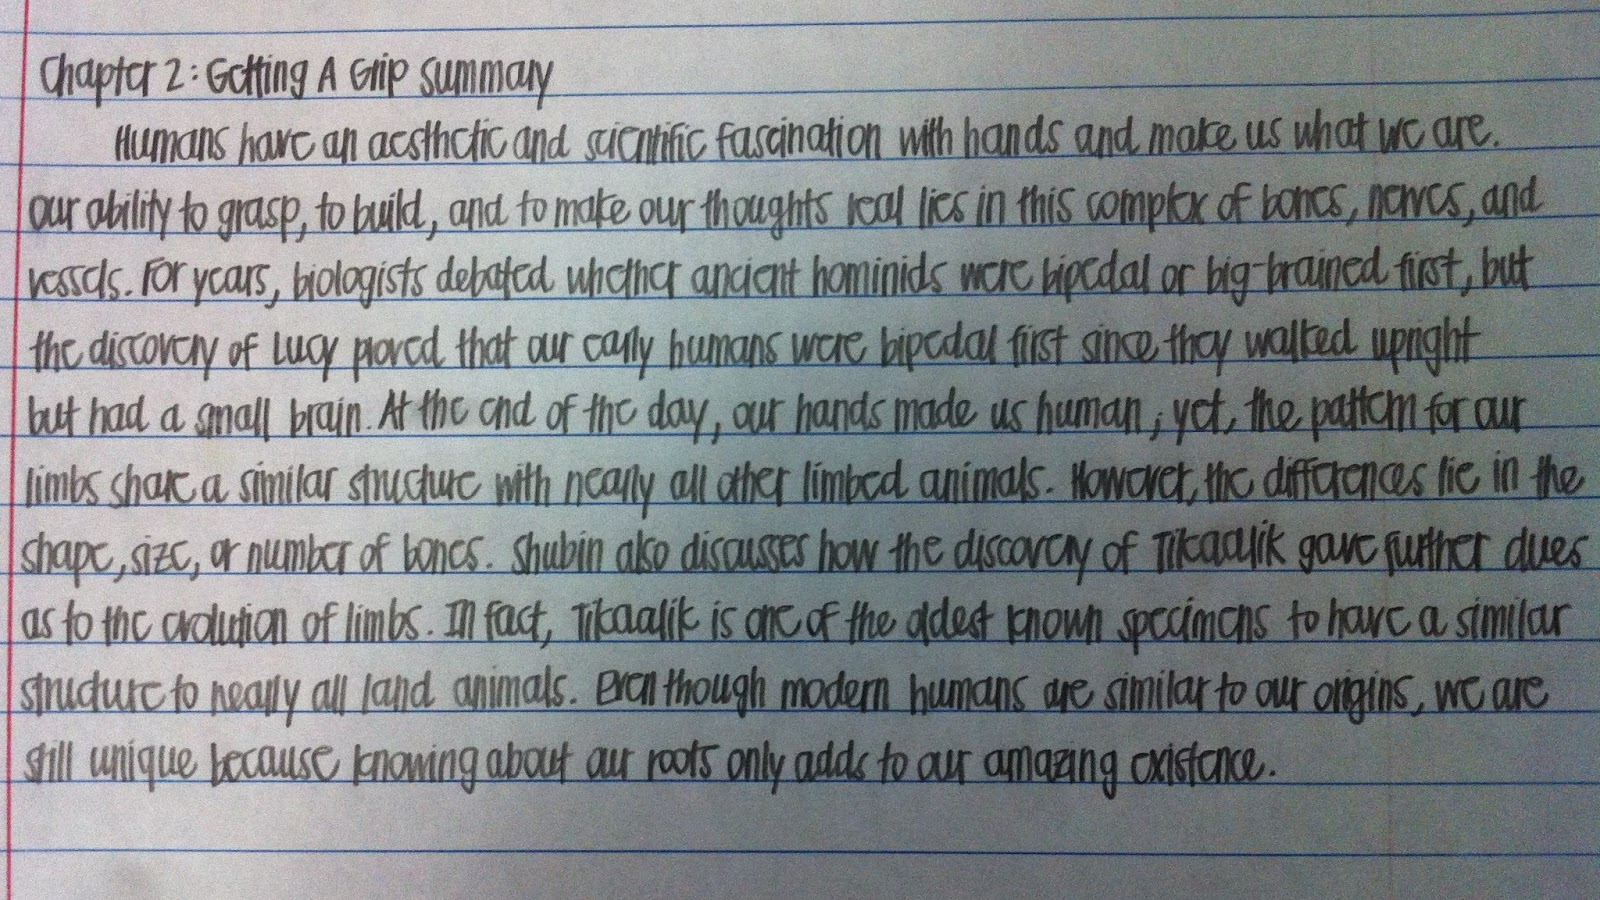 Ap biology your inner fish chapters 1 2 for Your inner fish summary